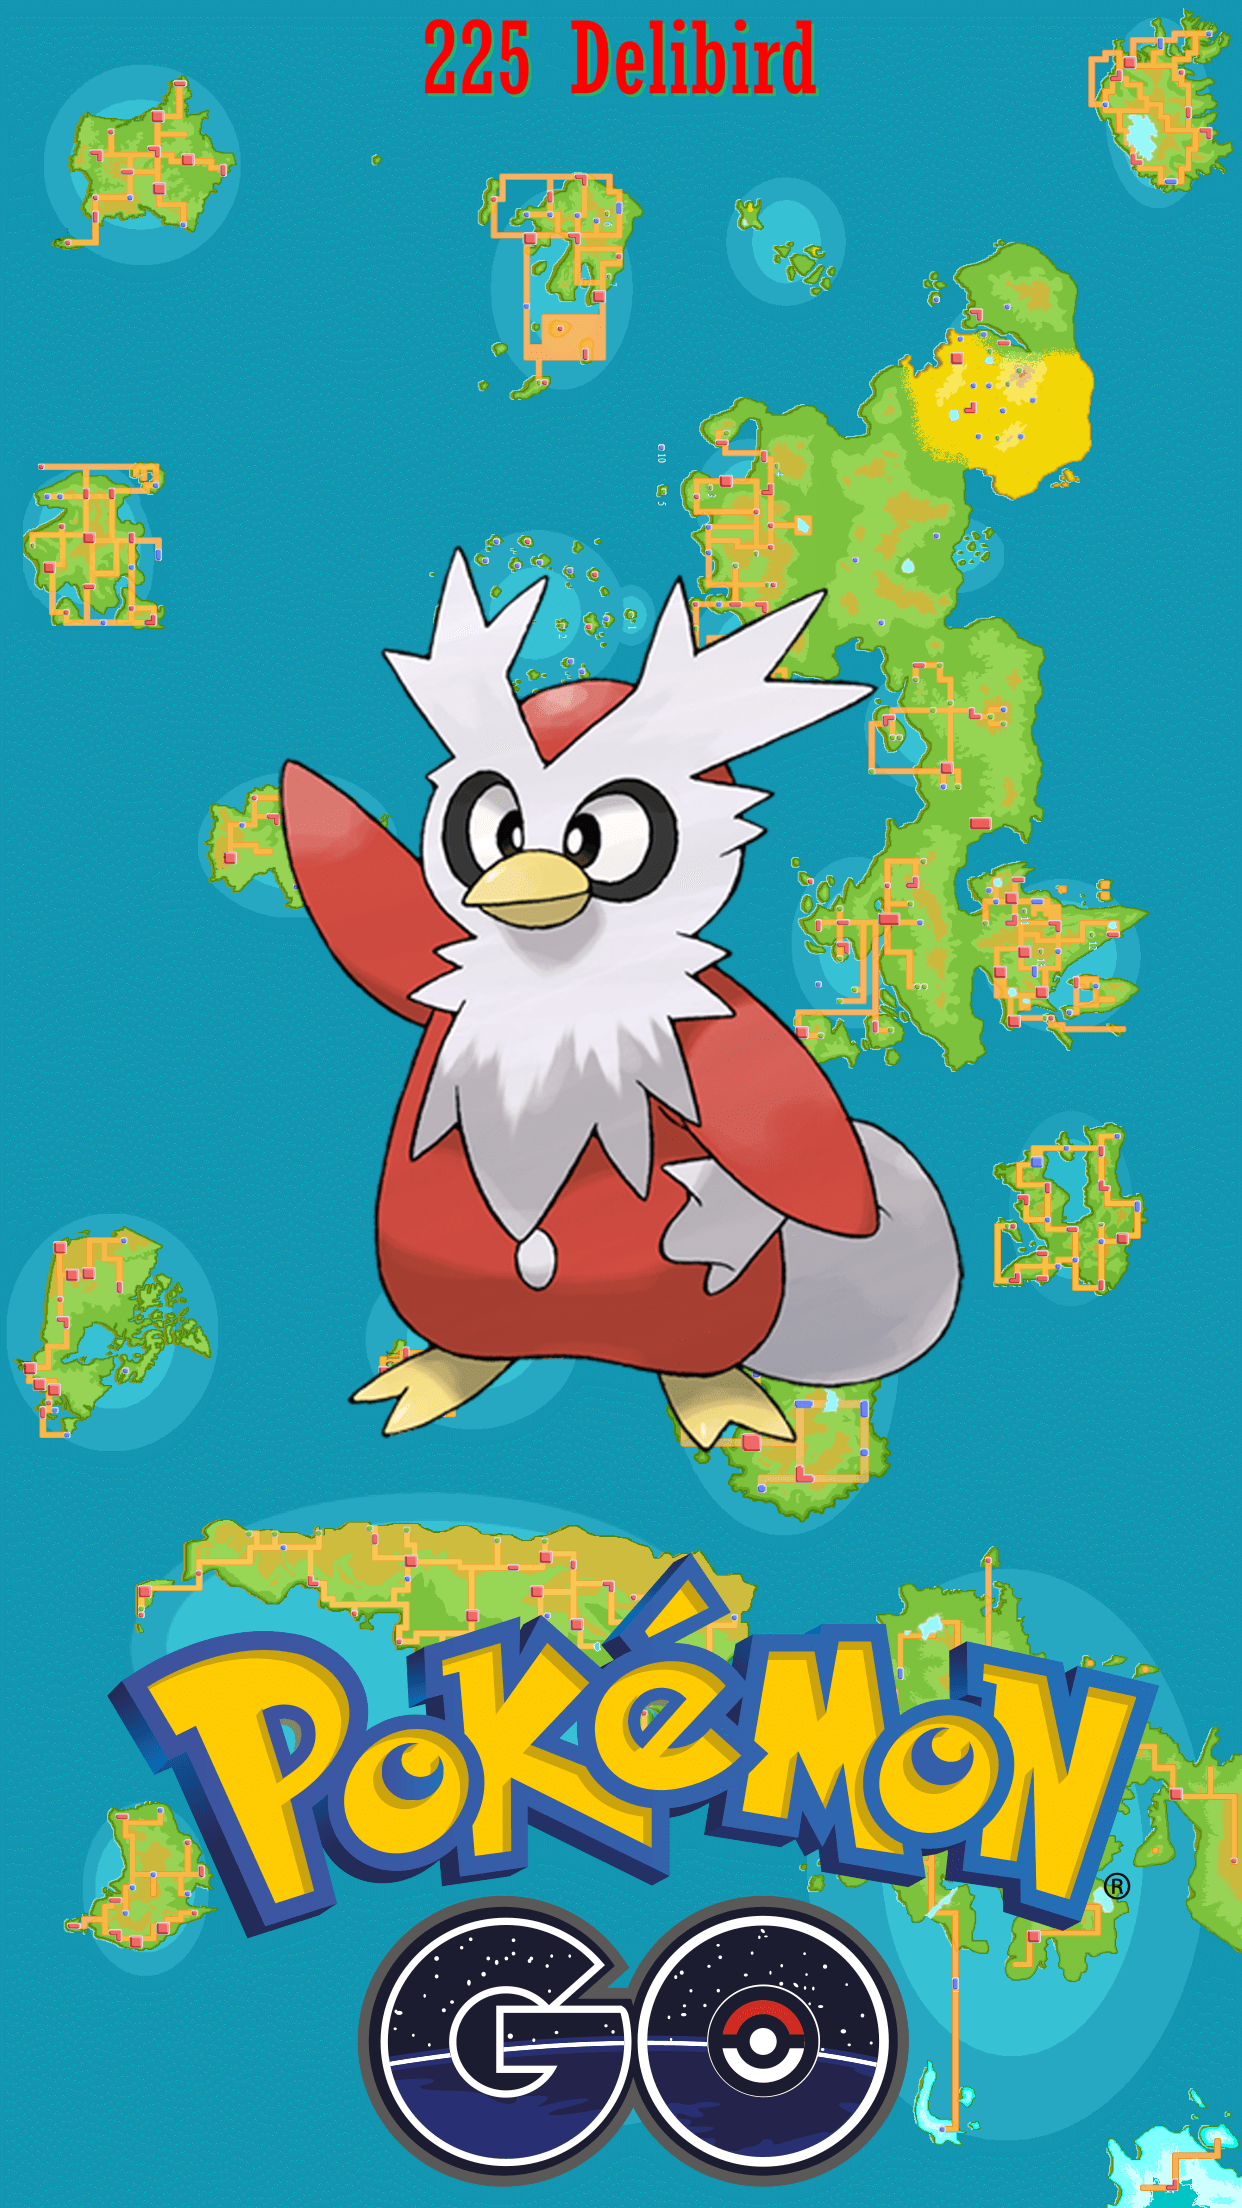 225 Street Map Delibird | Wallpaper